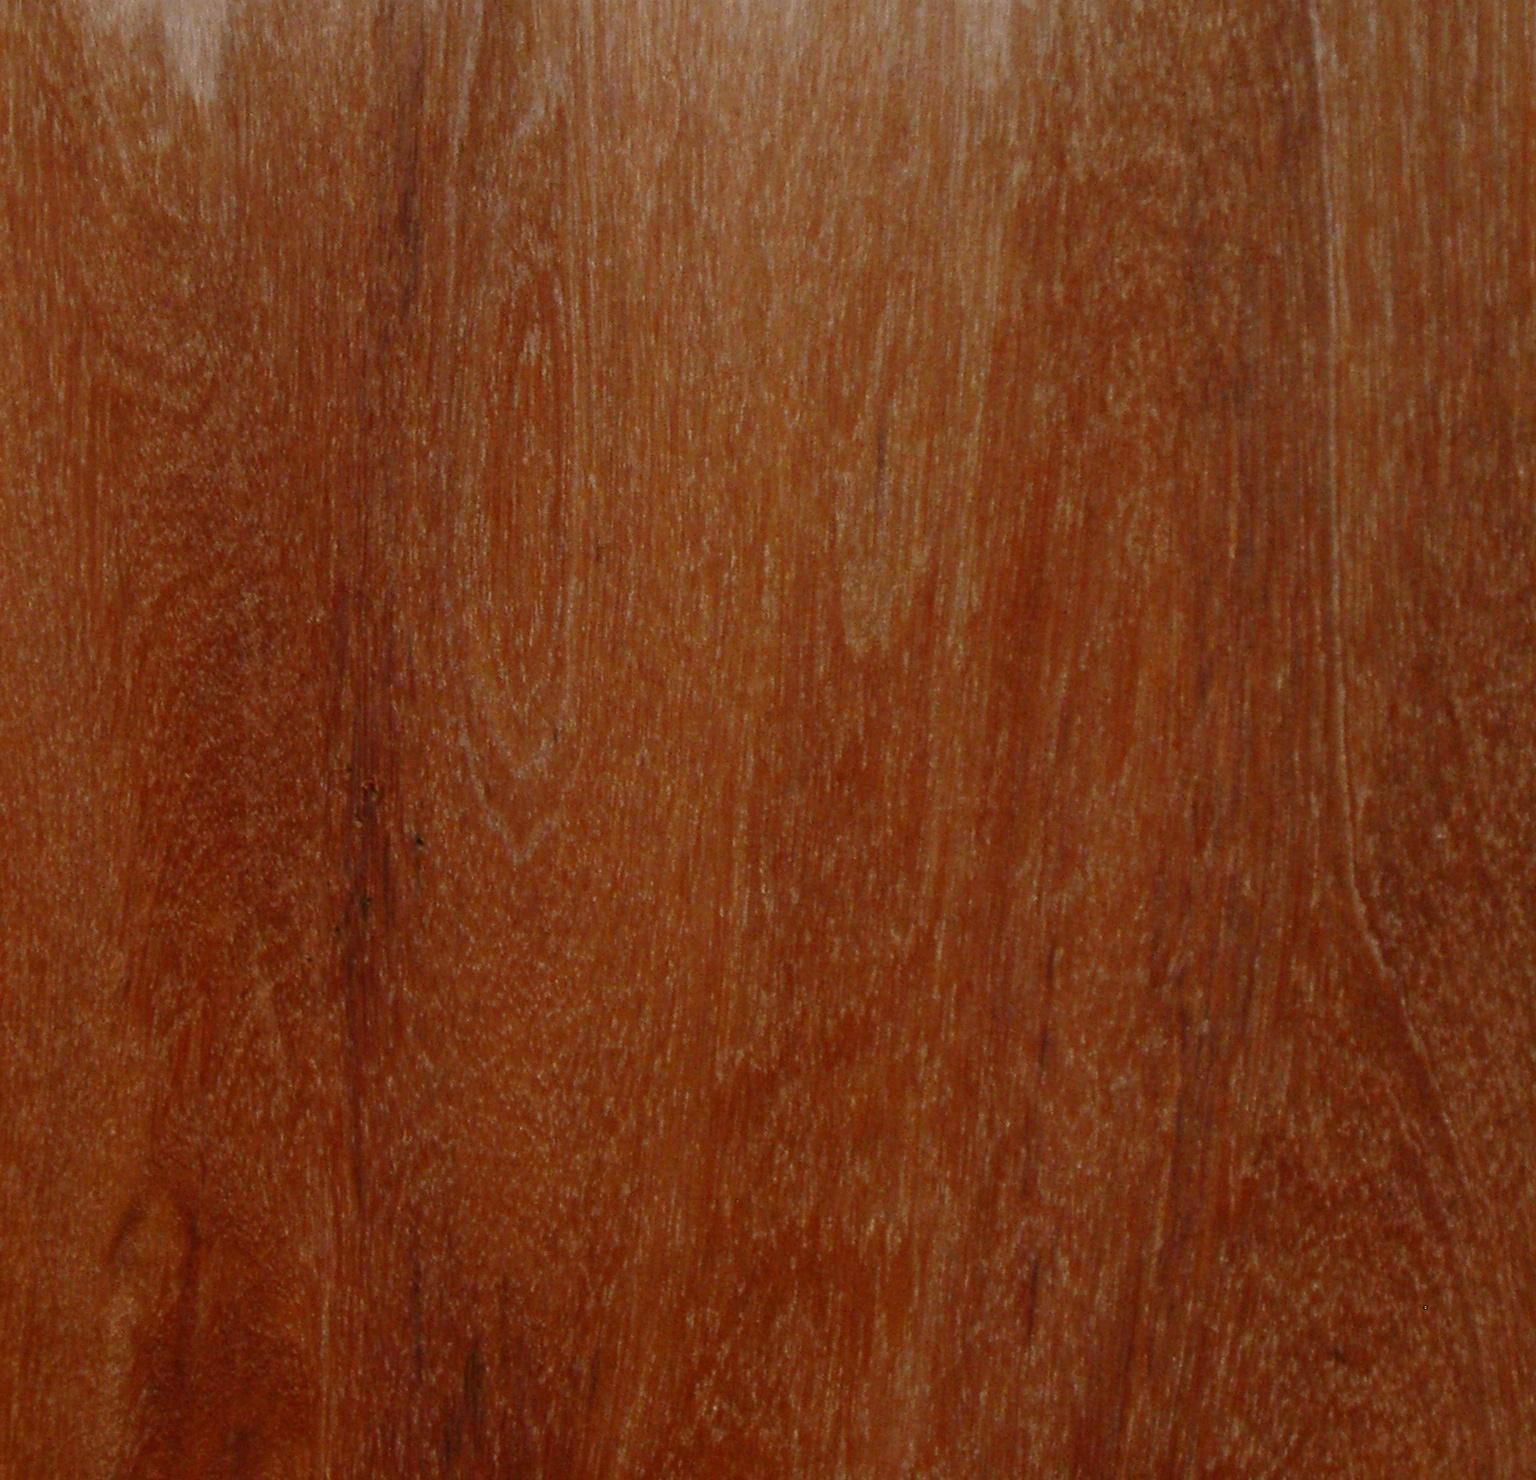 Cedar flooring tips cedar floors garage floor coatings for Cedar flooring